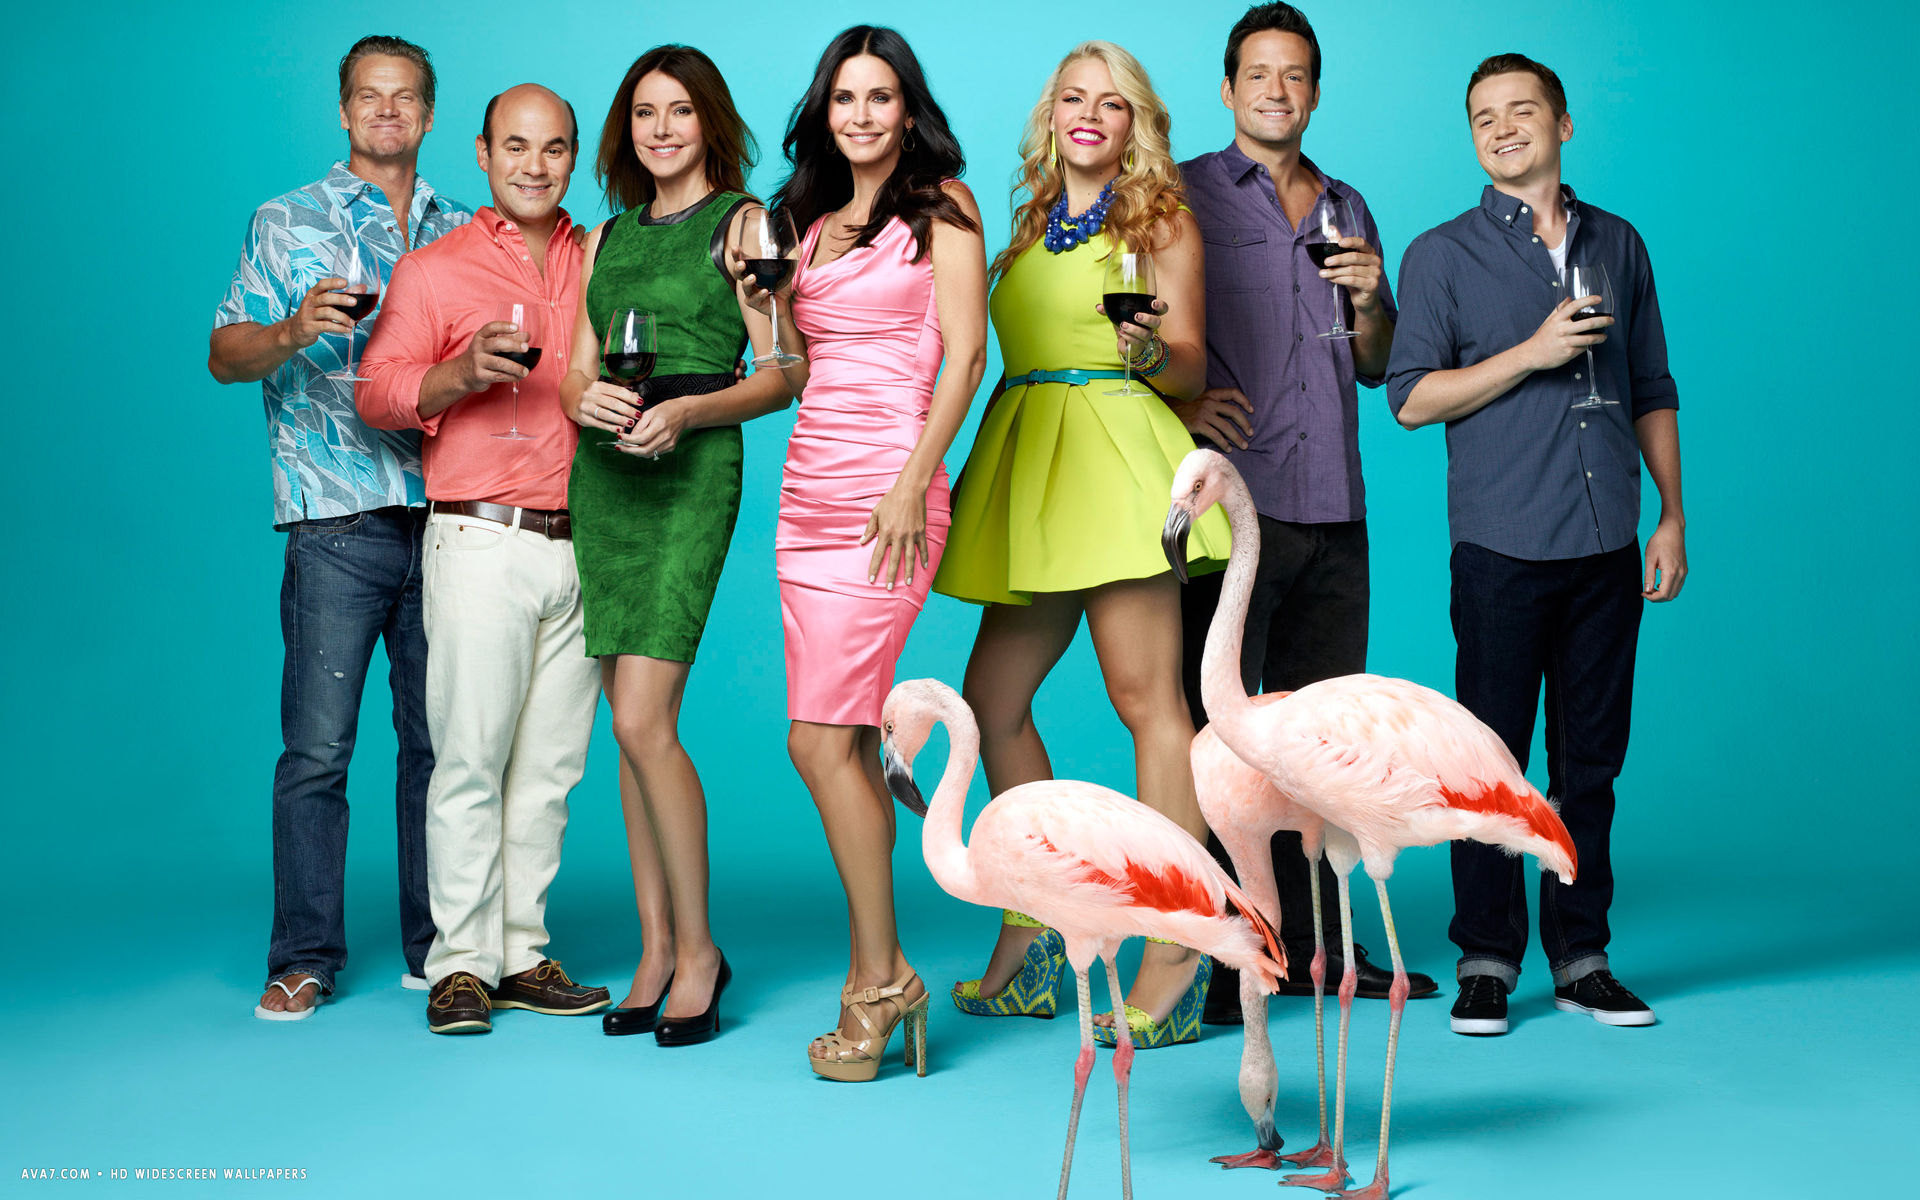 cougar town tv series show hd widescreen wallpaper